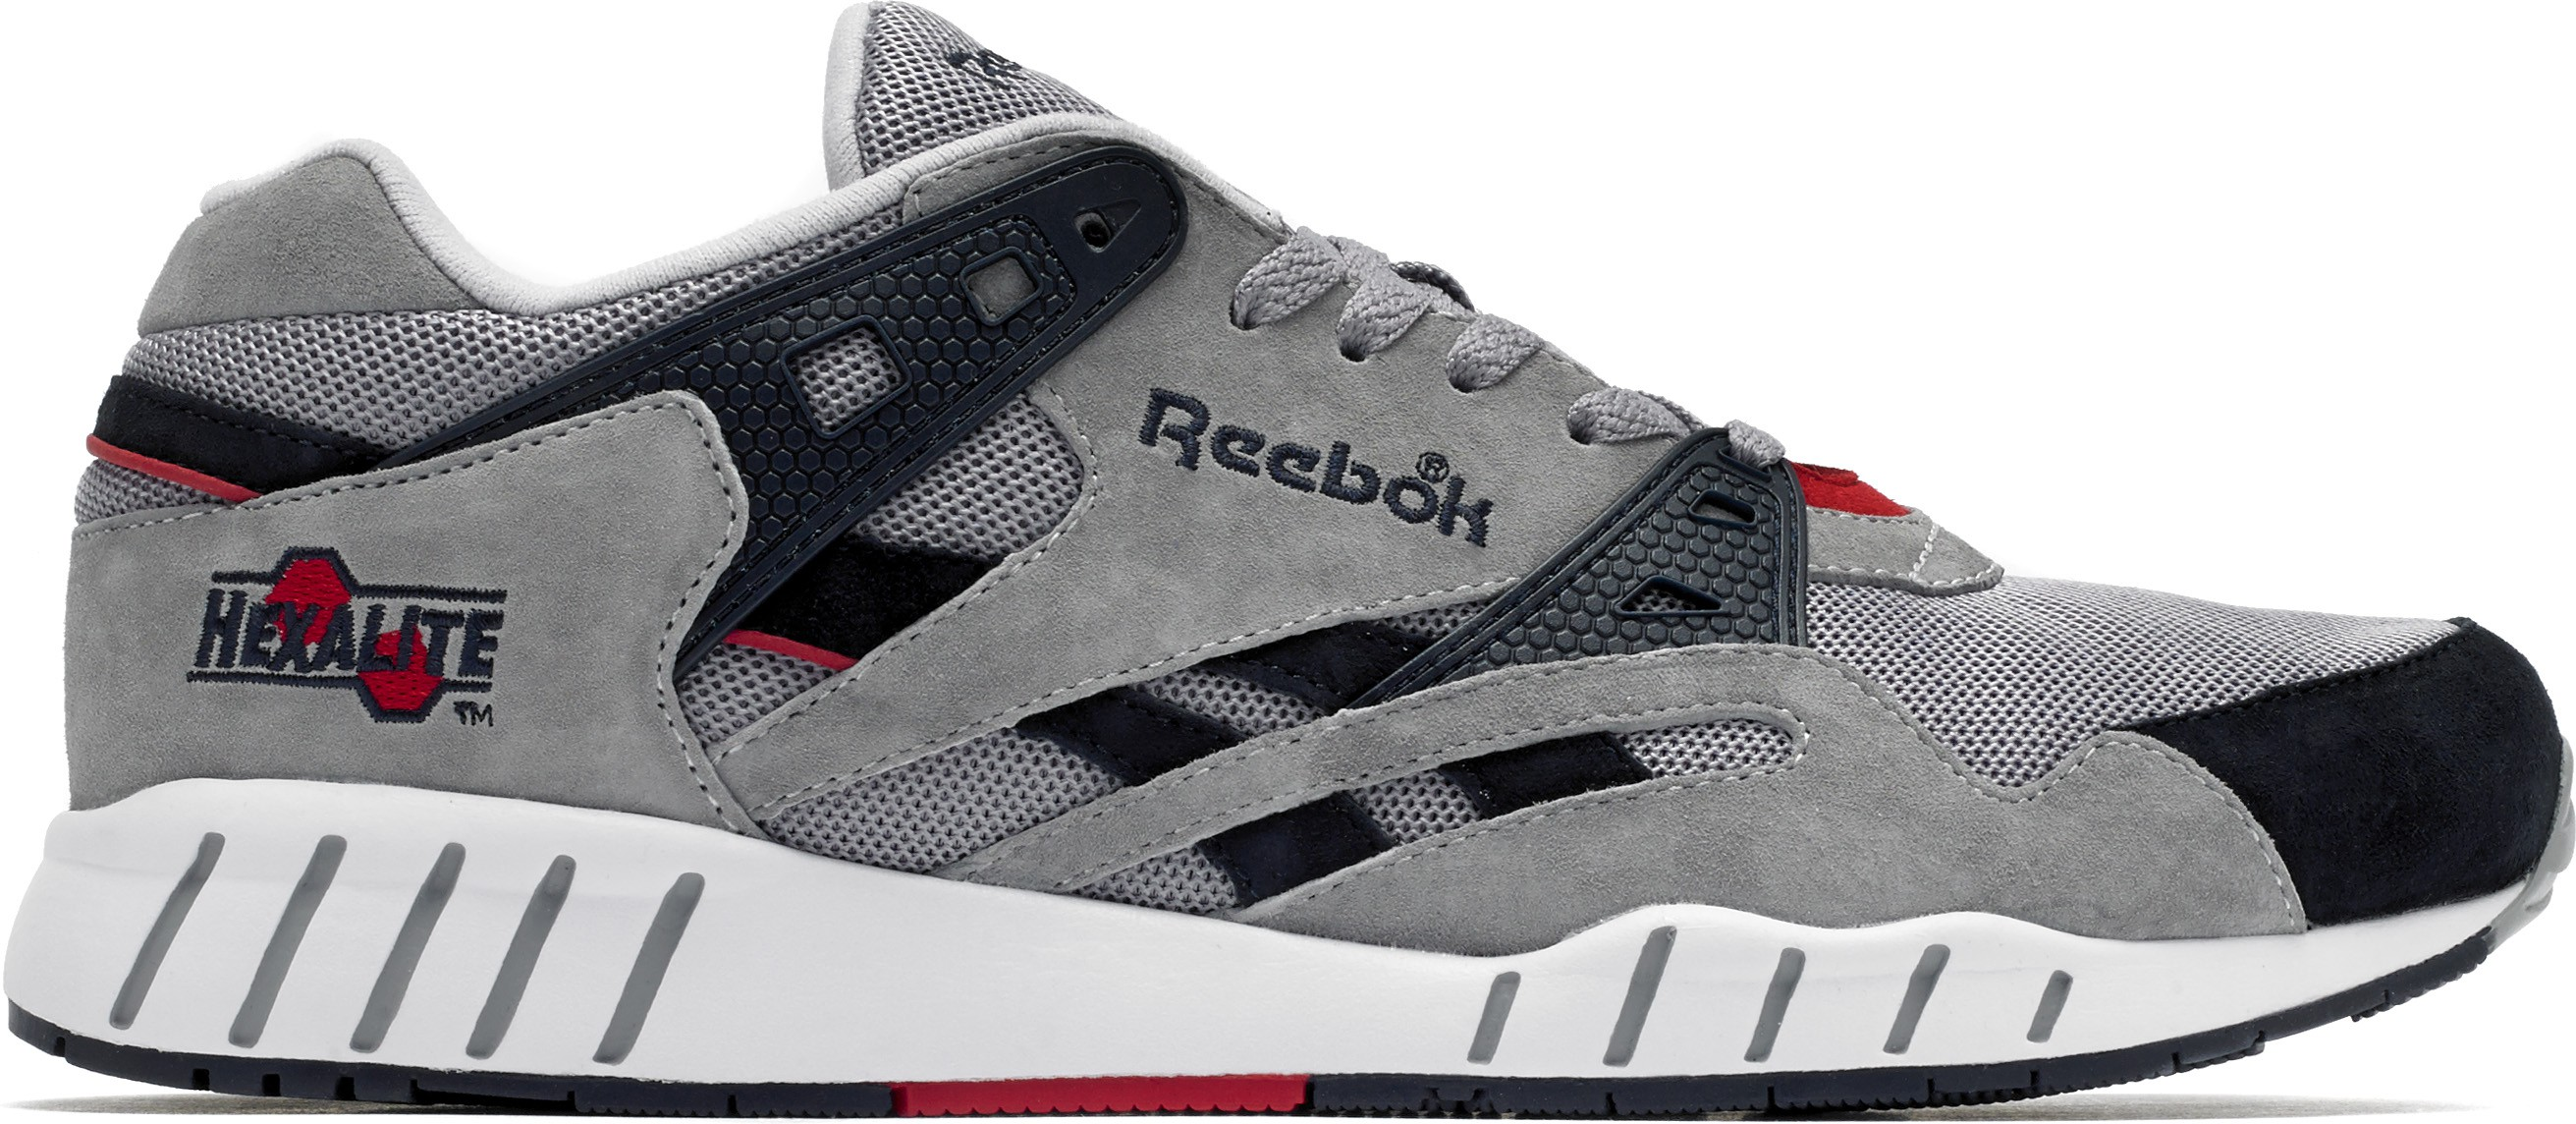 Trainer Reebok Sole Hommes Six8qwu Shoemaniaq V60433 Zsuqgpmv Baskets culK3TJF1